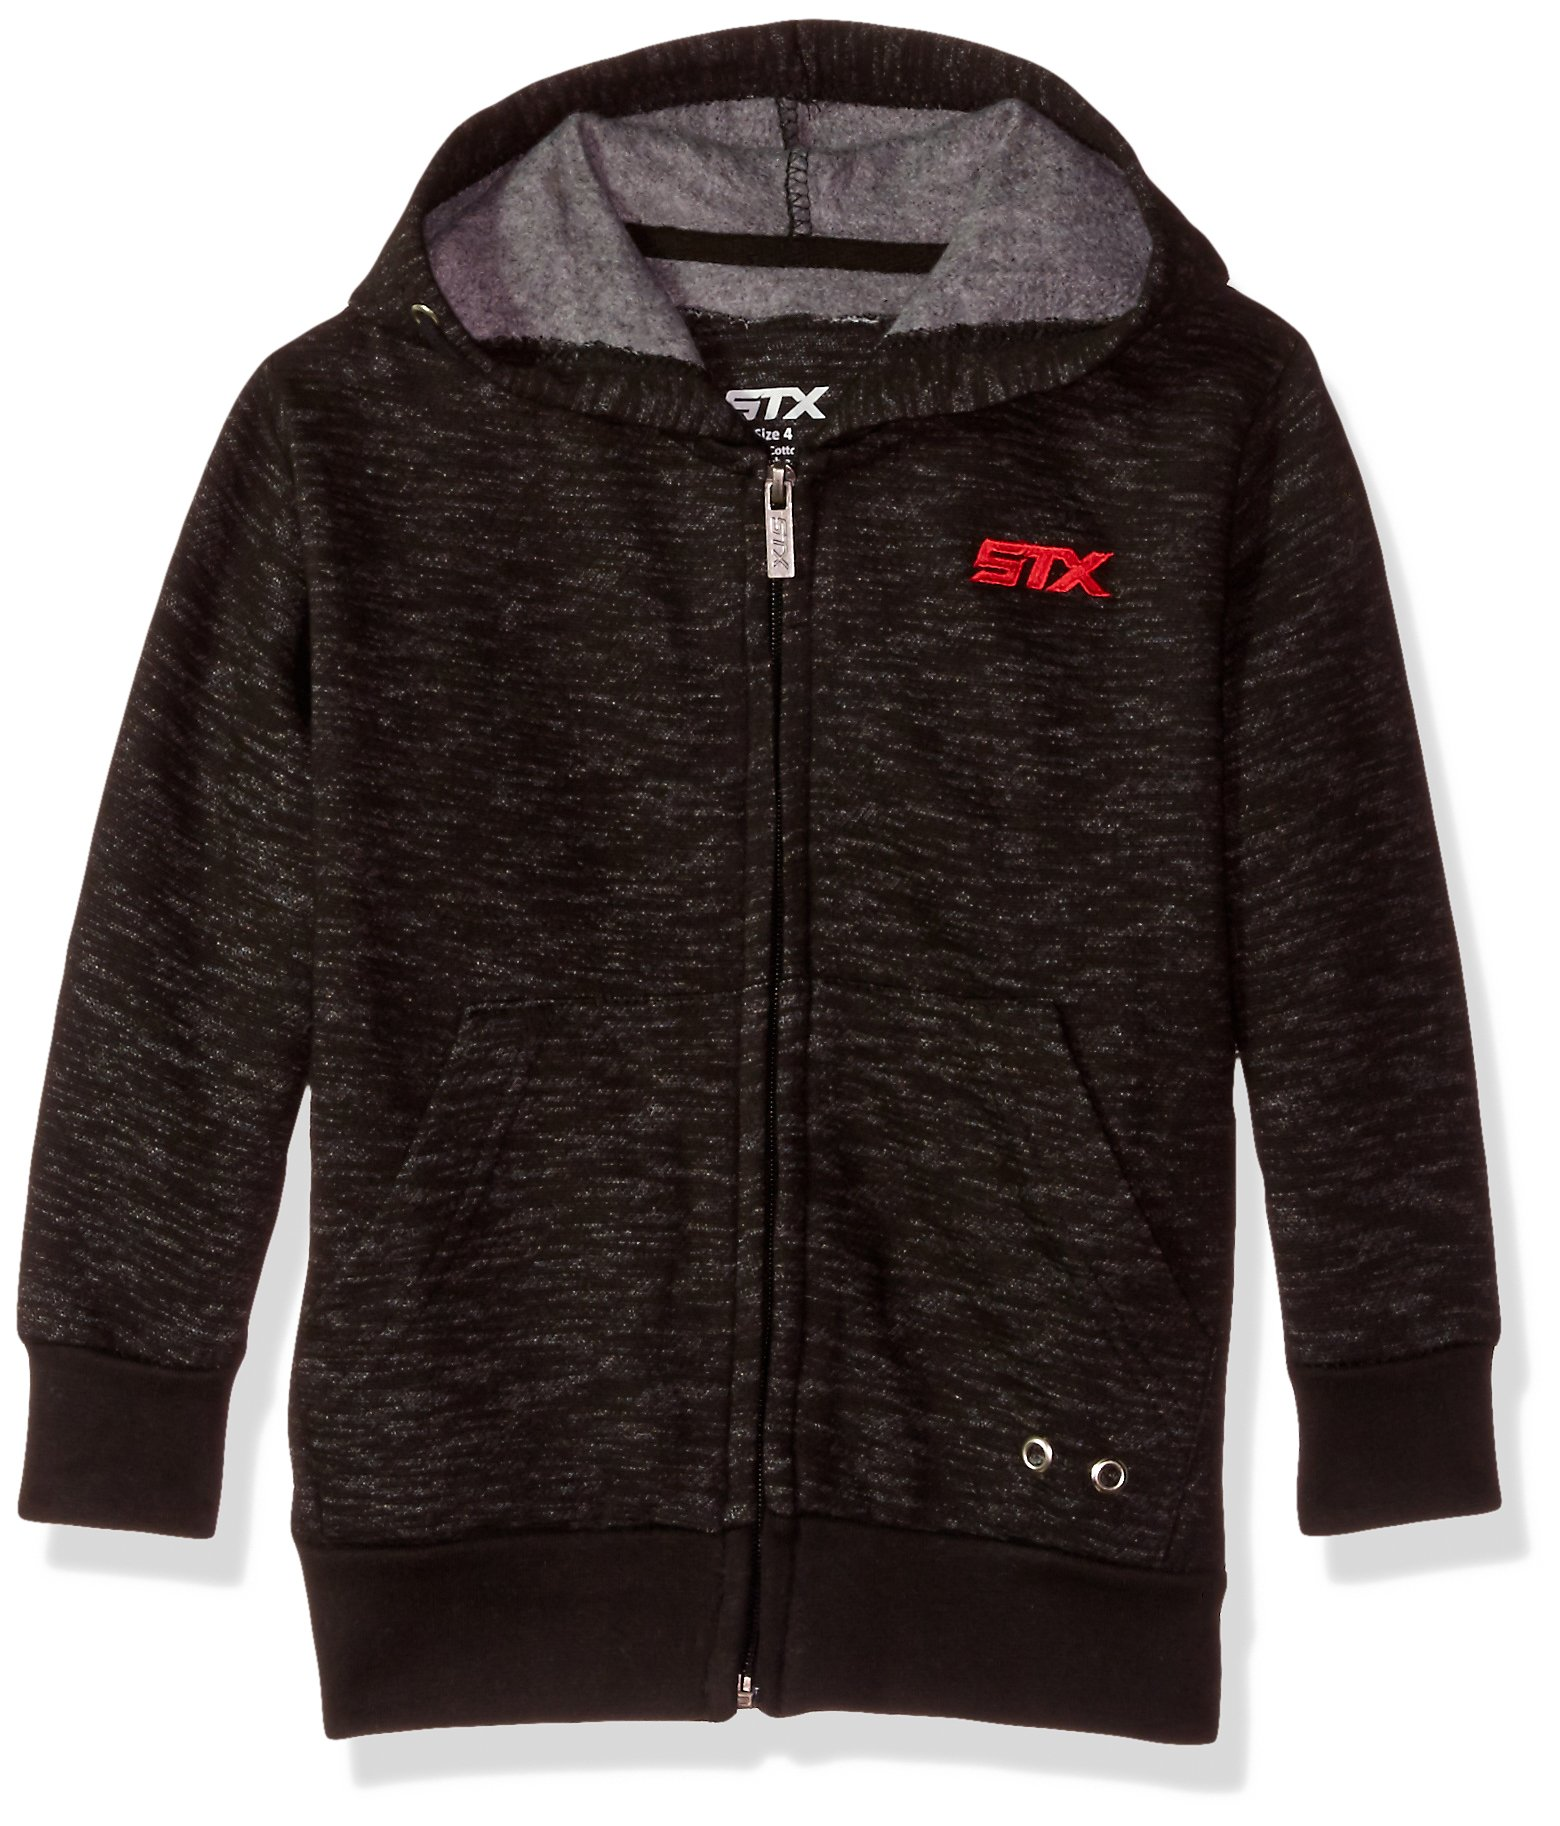 STX Big Boys' Solid Embro Hoodie, SI82-Black and Red, 8